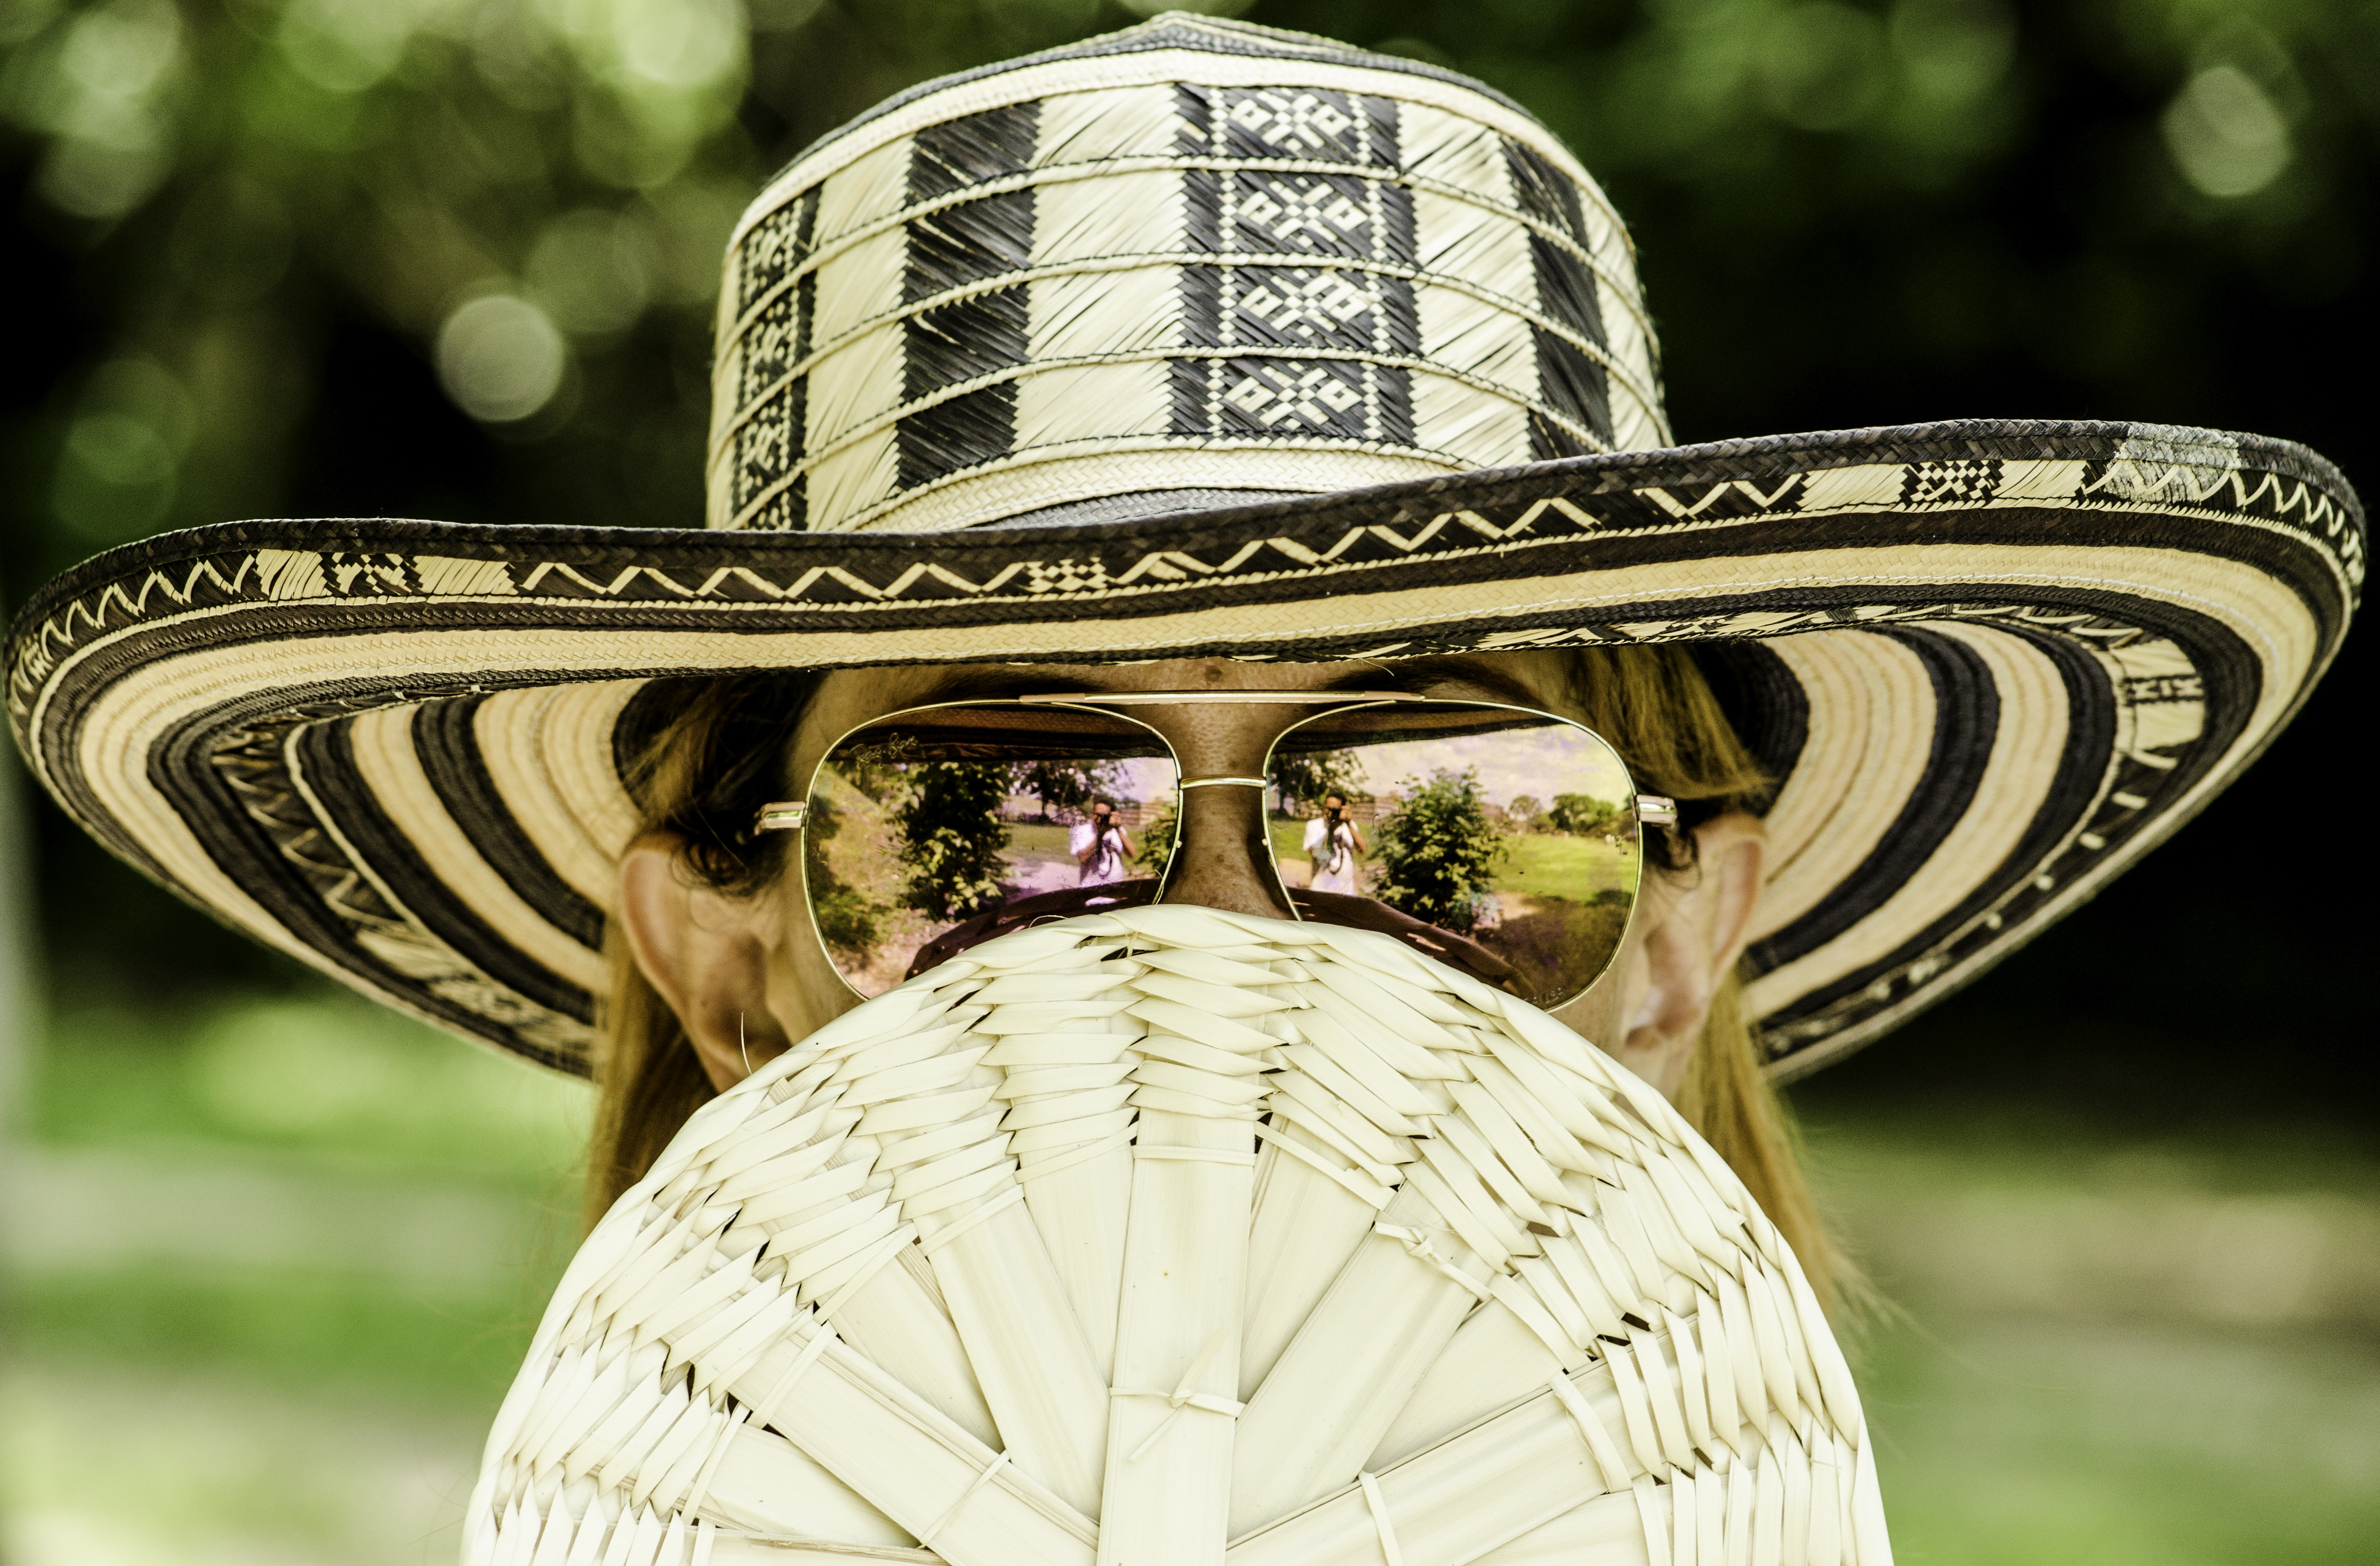 A blonde woman wearing a sun hat with sunglasses while holding a fan